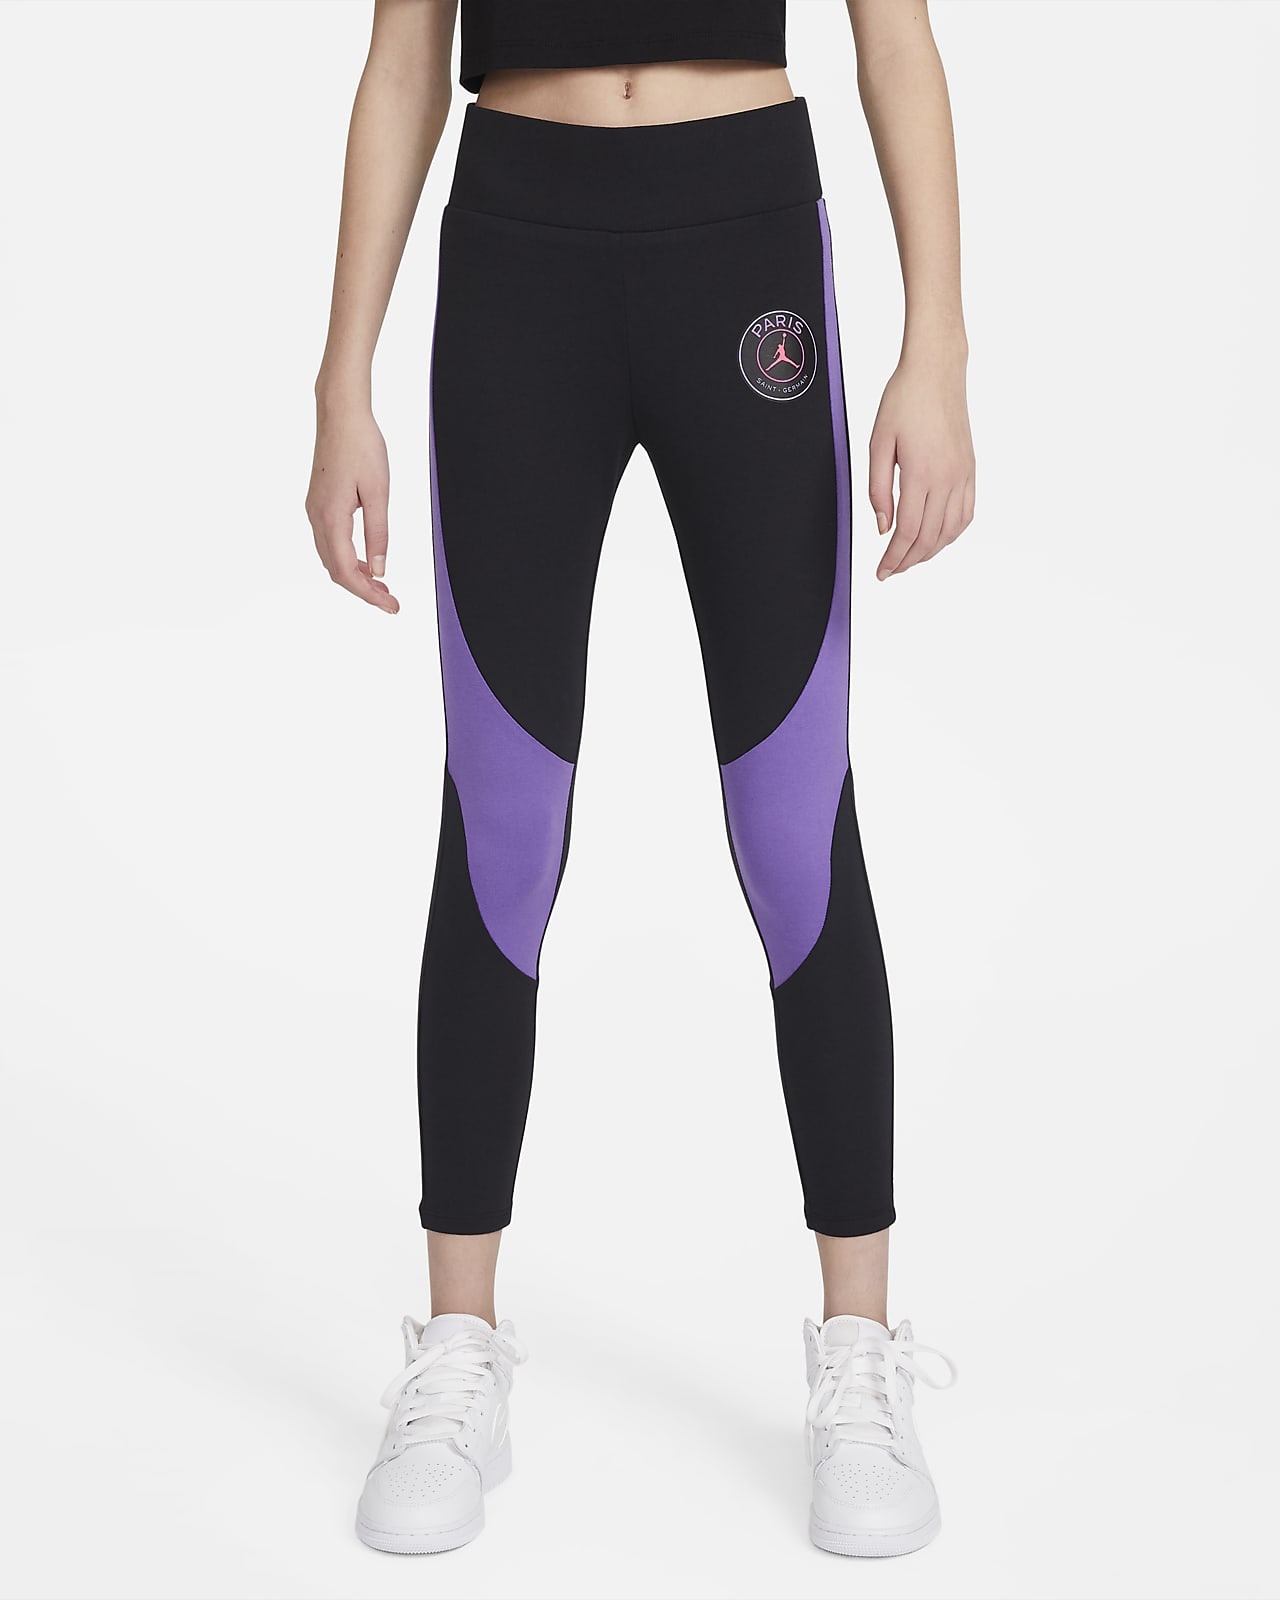 Paris Saint-Germain Older Kids' (Girls') Leggings